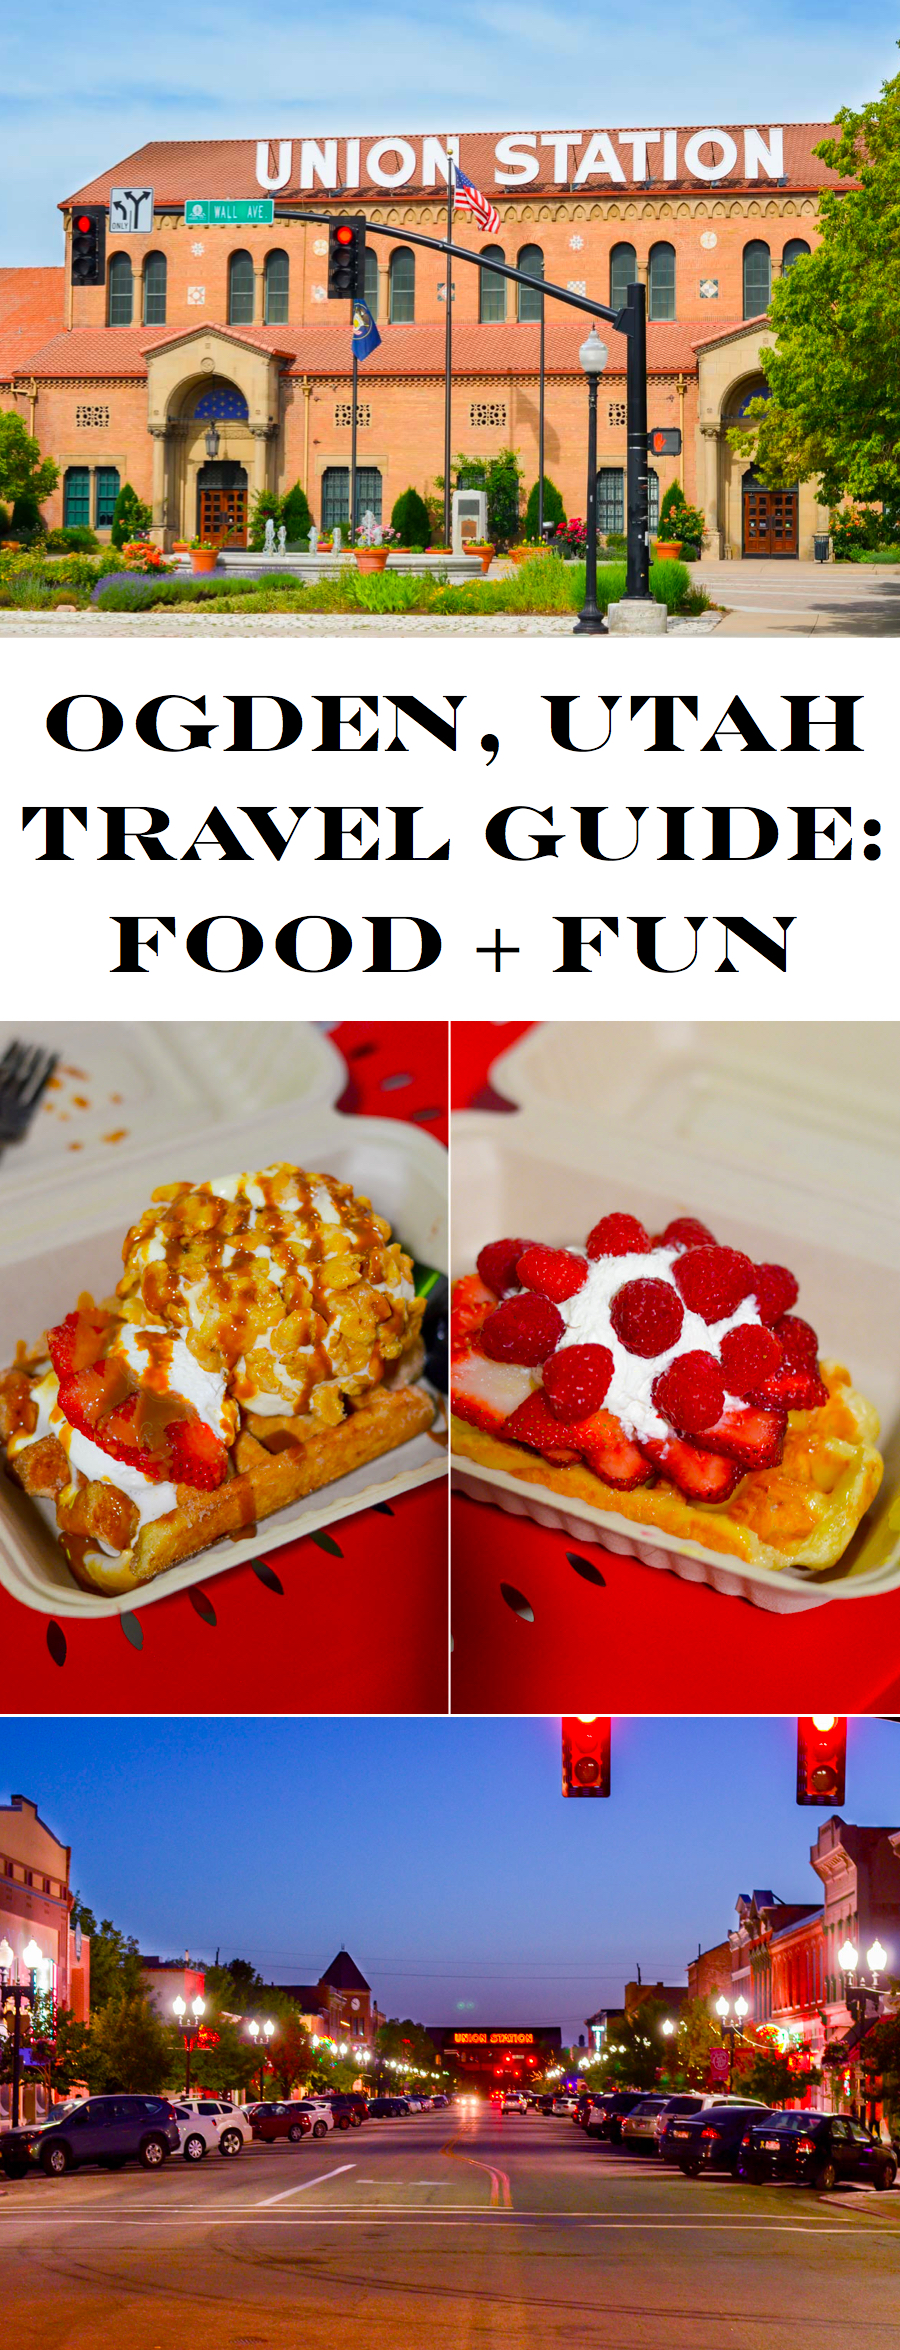 Ogden Travel Guide. What to Do. Where to Stay. Where to Eat!